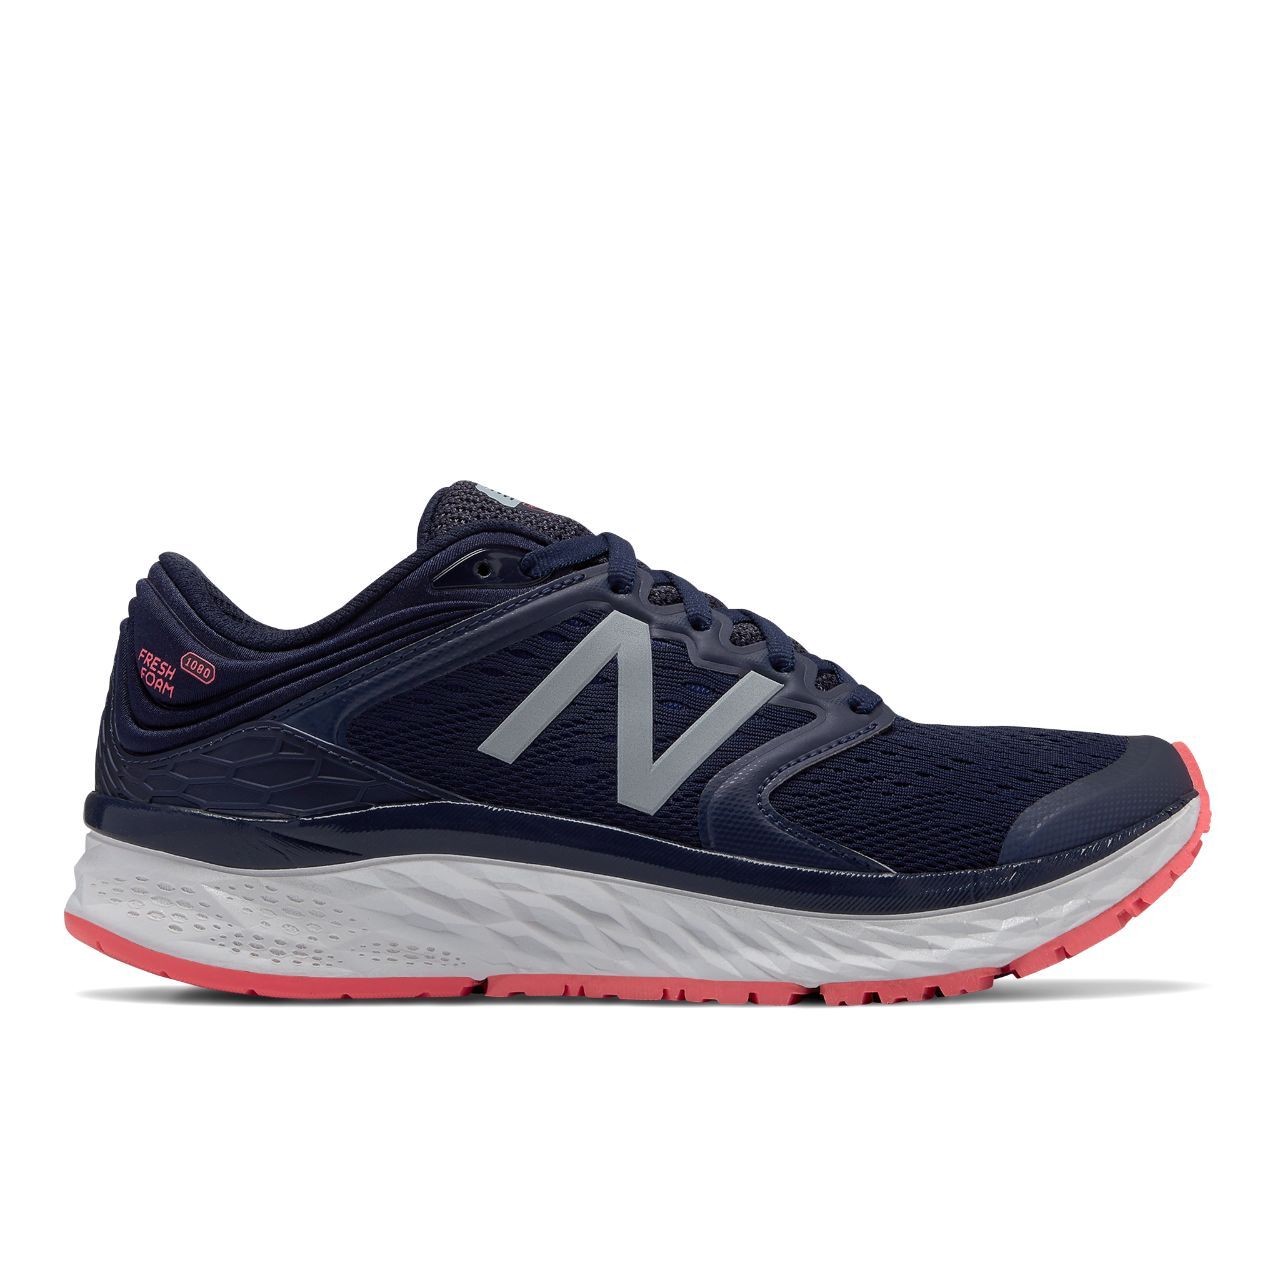 New Balance Lady 1080v8 in Blau